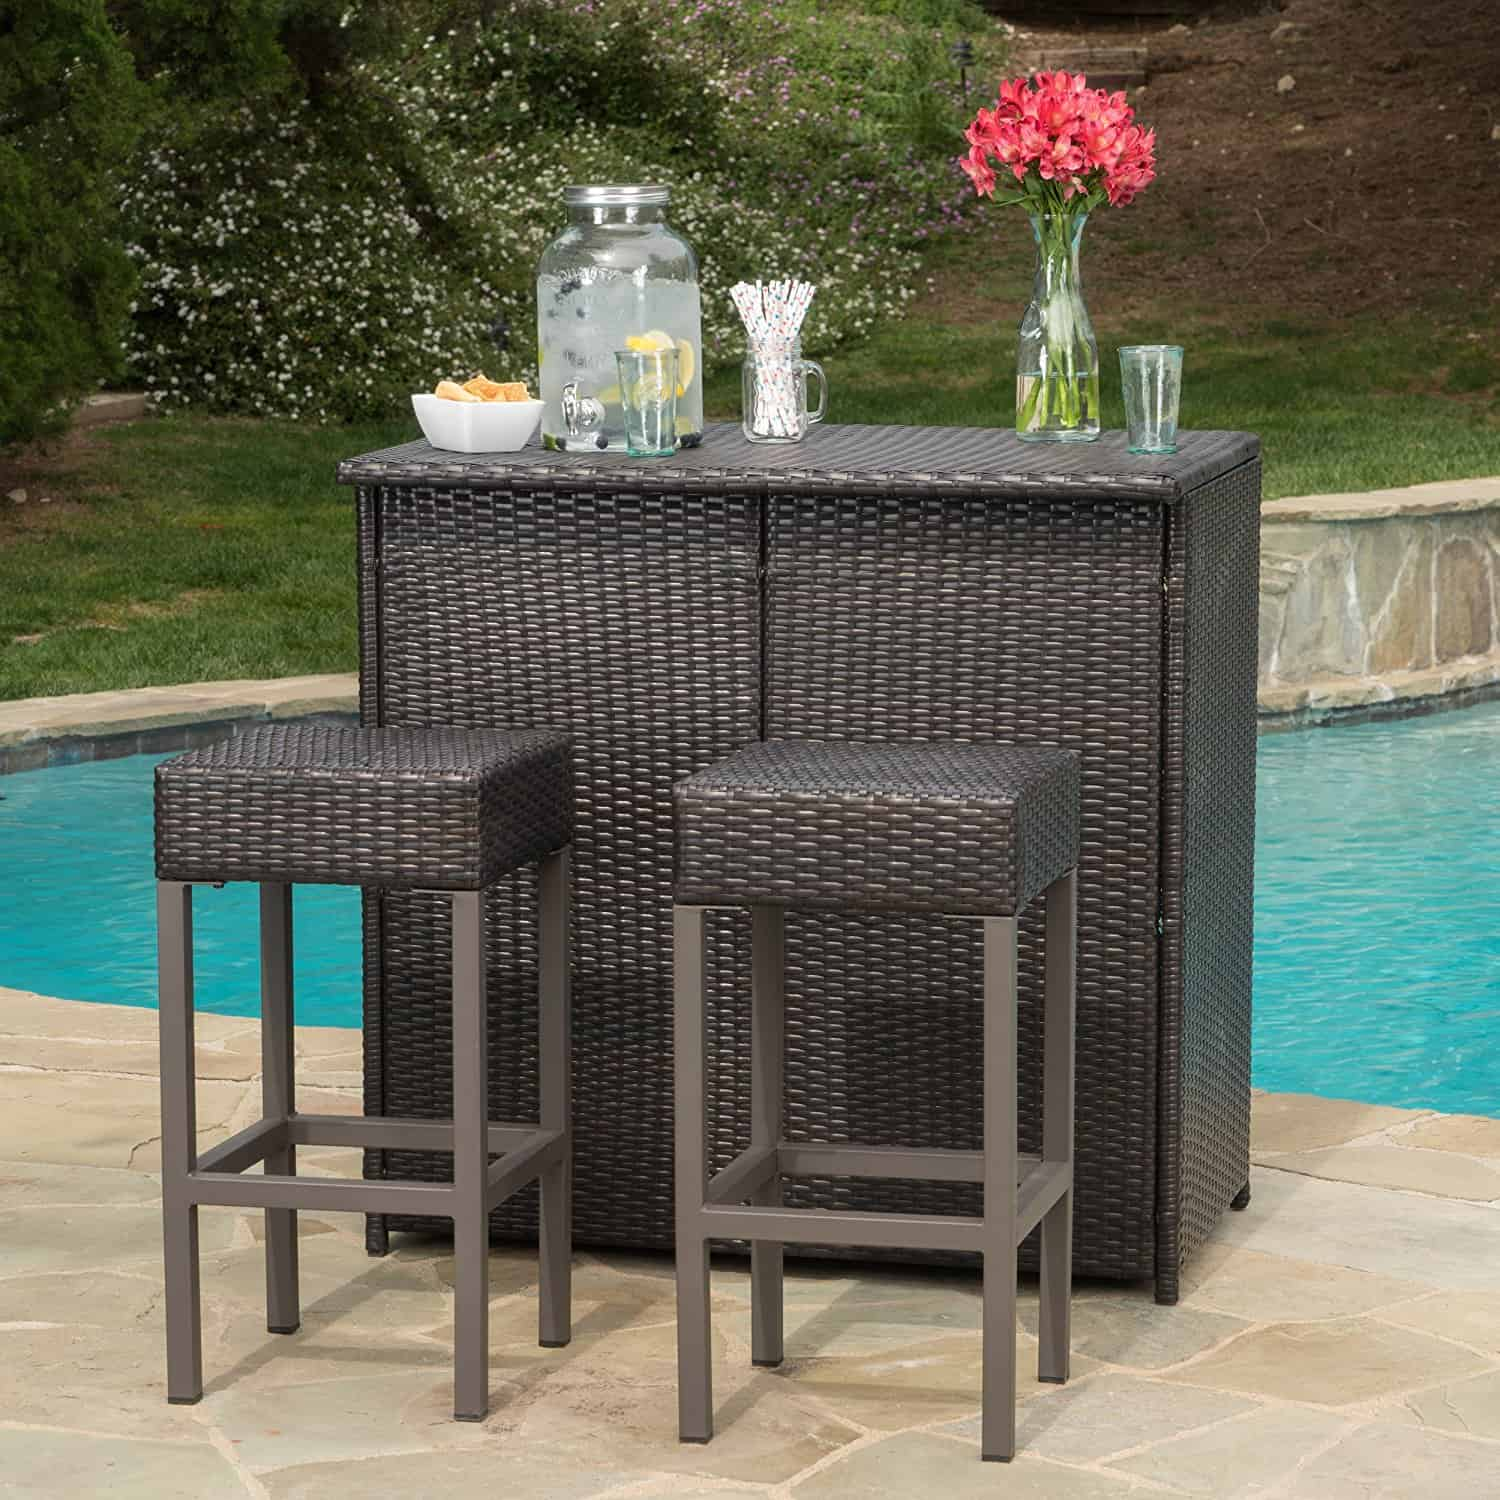 Oneida Patio Furniture Outdoor Wicker Bar Island Set